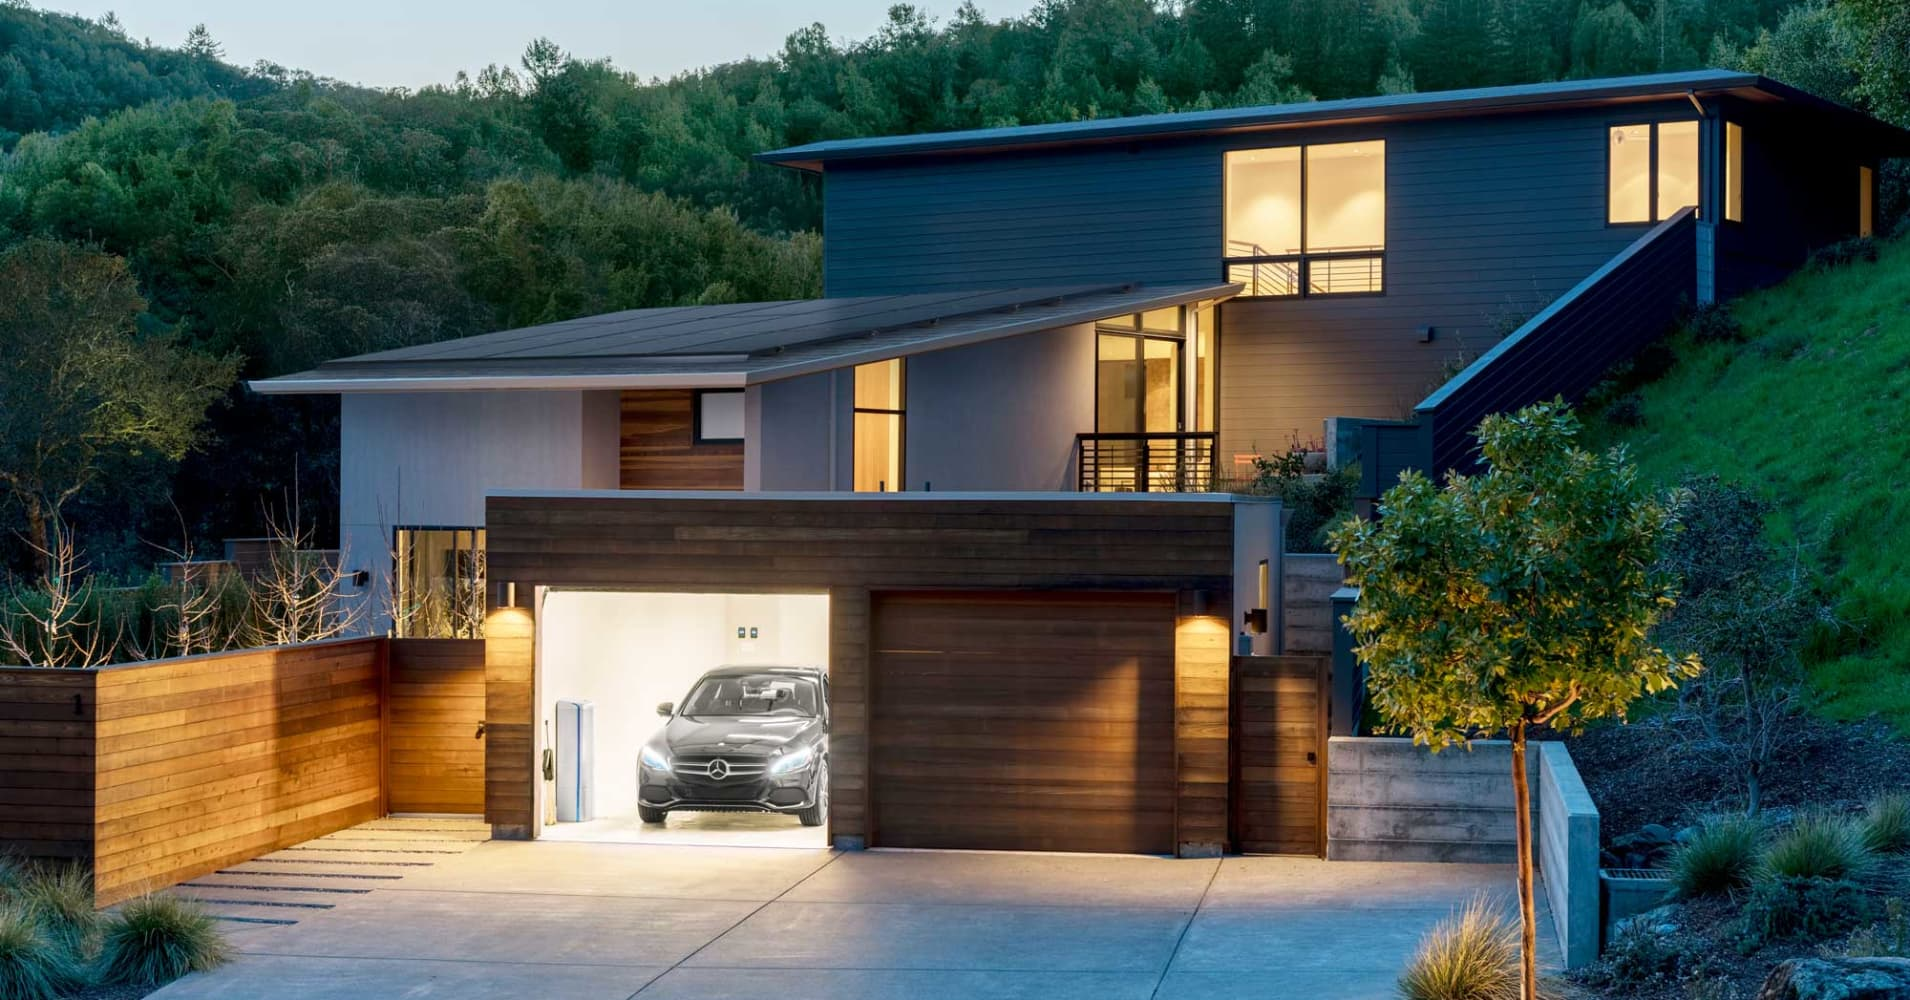 Mercedes-Benz and Vivint Solar partner to compete with Tesla in home energy